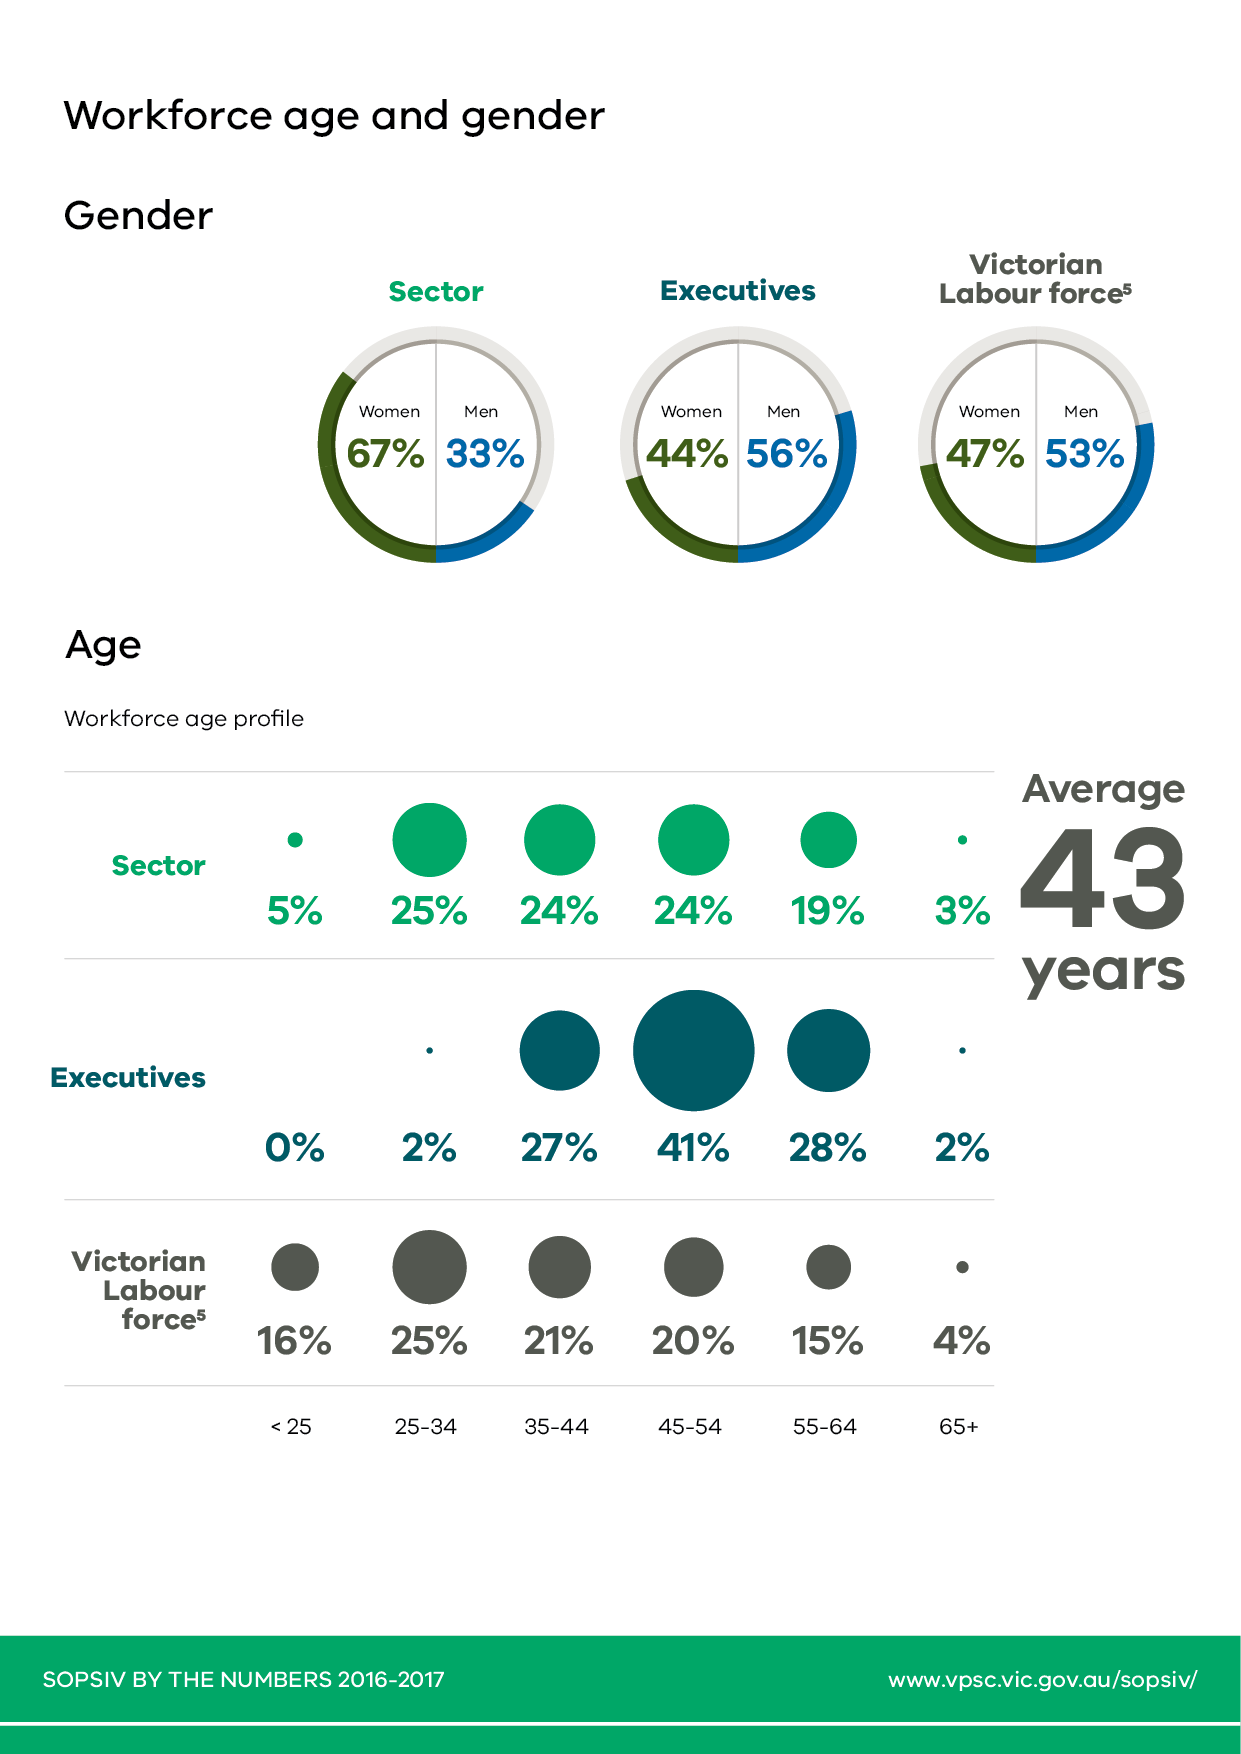 Page 3 of 5 pages of infographic representations of the statistical highlights from the State of the Public Sector in Victoria 2016-2017 report.